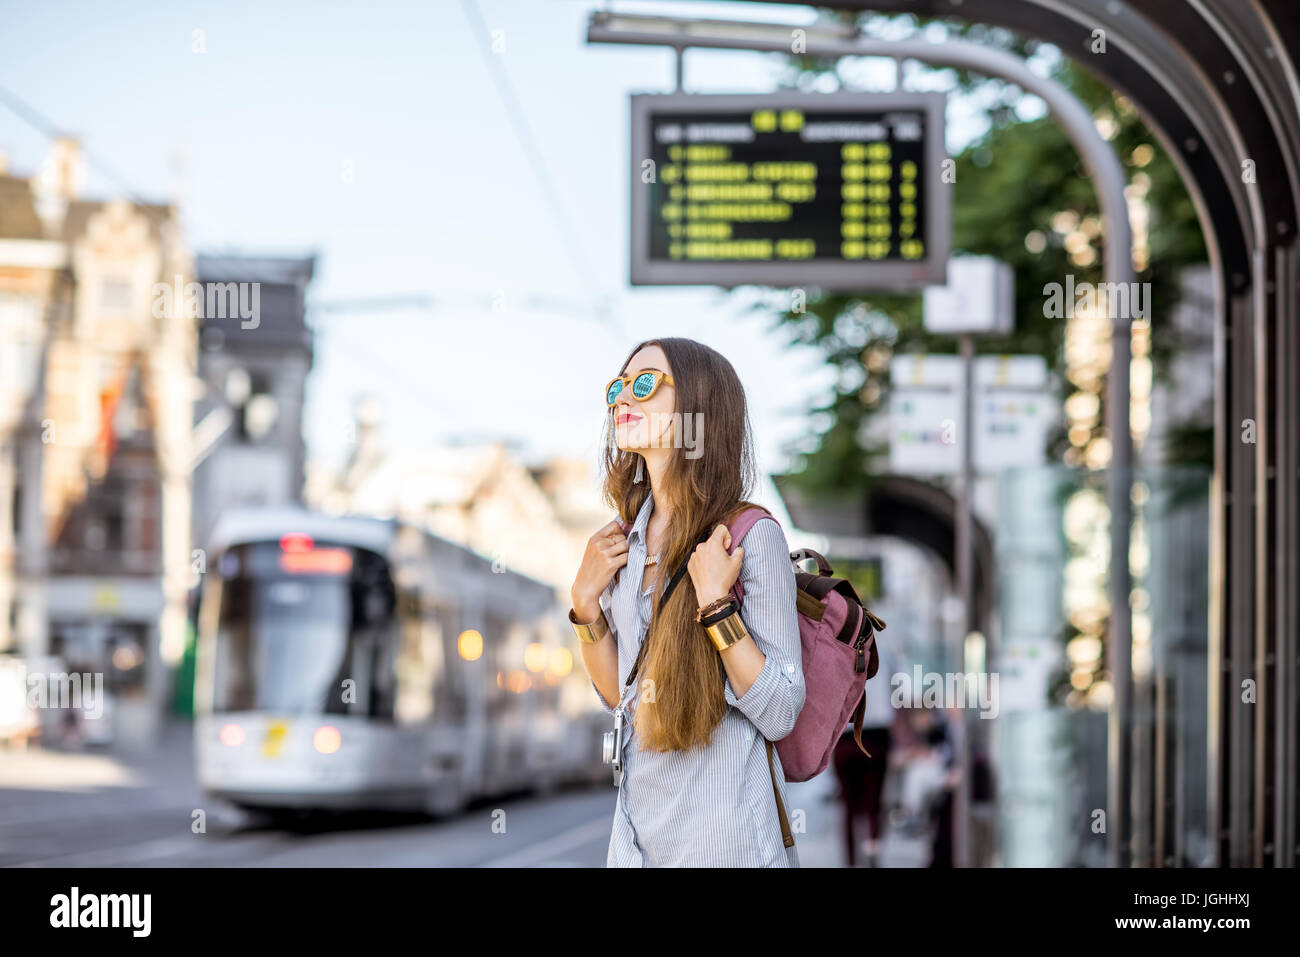 Woman on the tram station - Stock Image